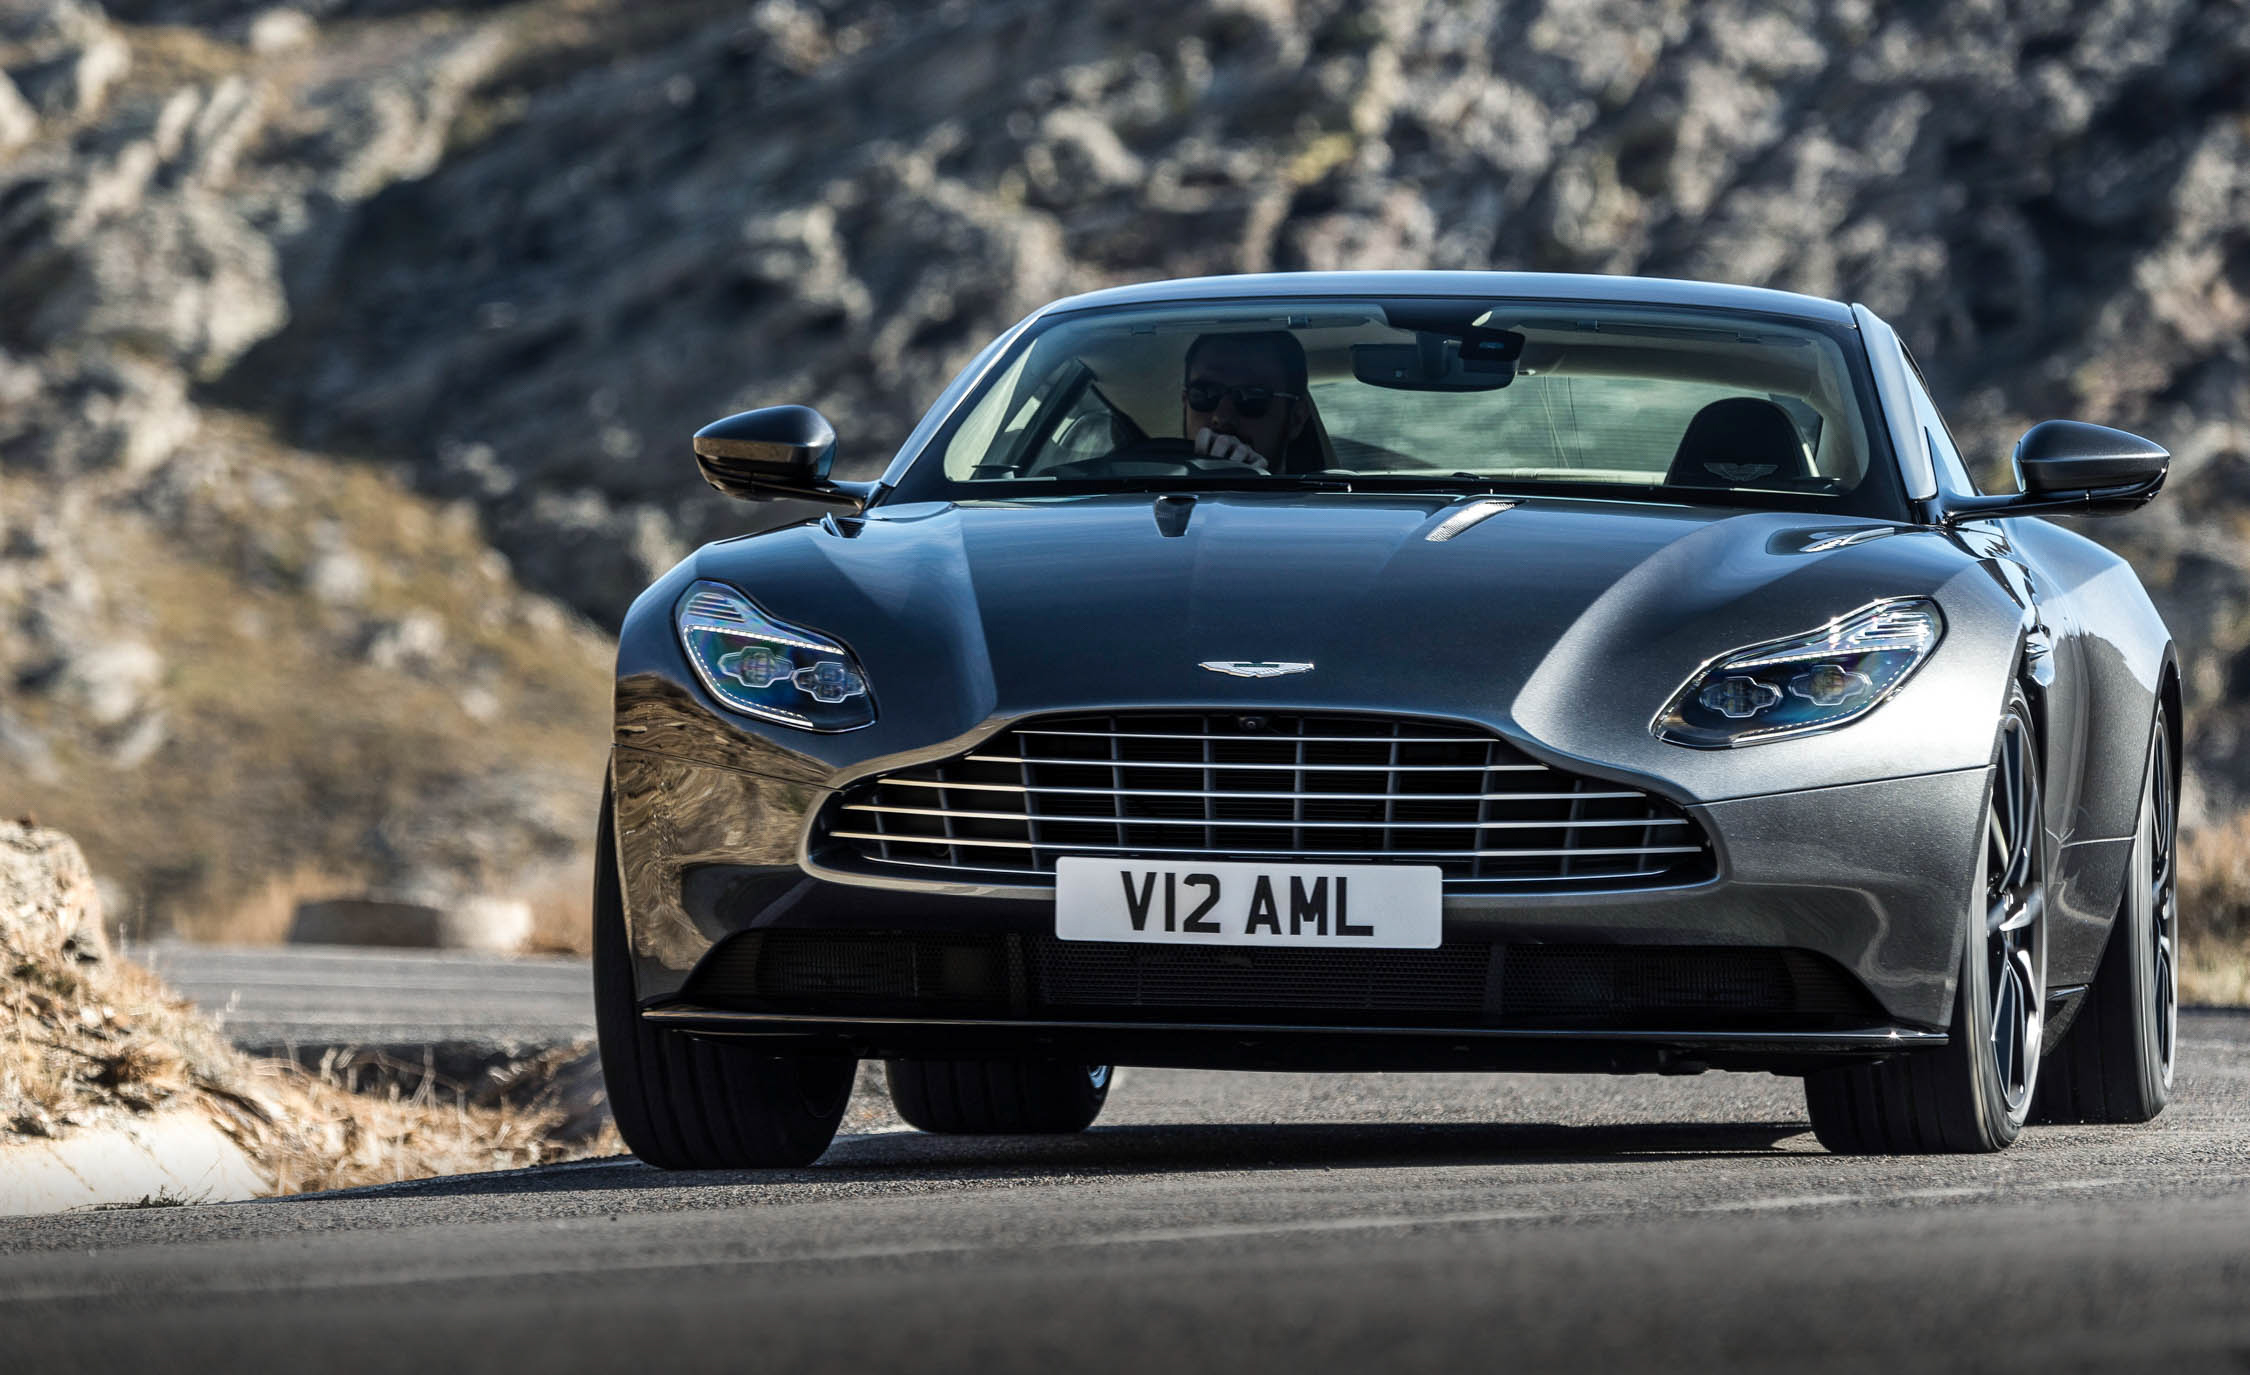 2017 Aston Martin Db11 Exterior Front View (View 20 of 22)